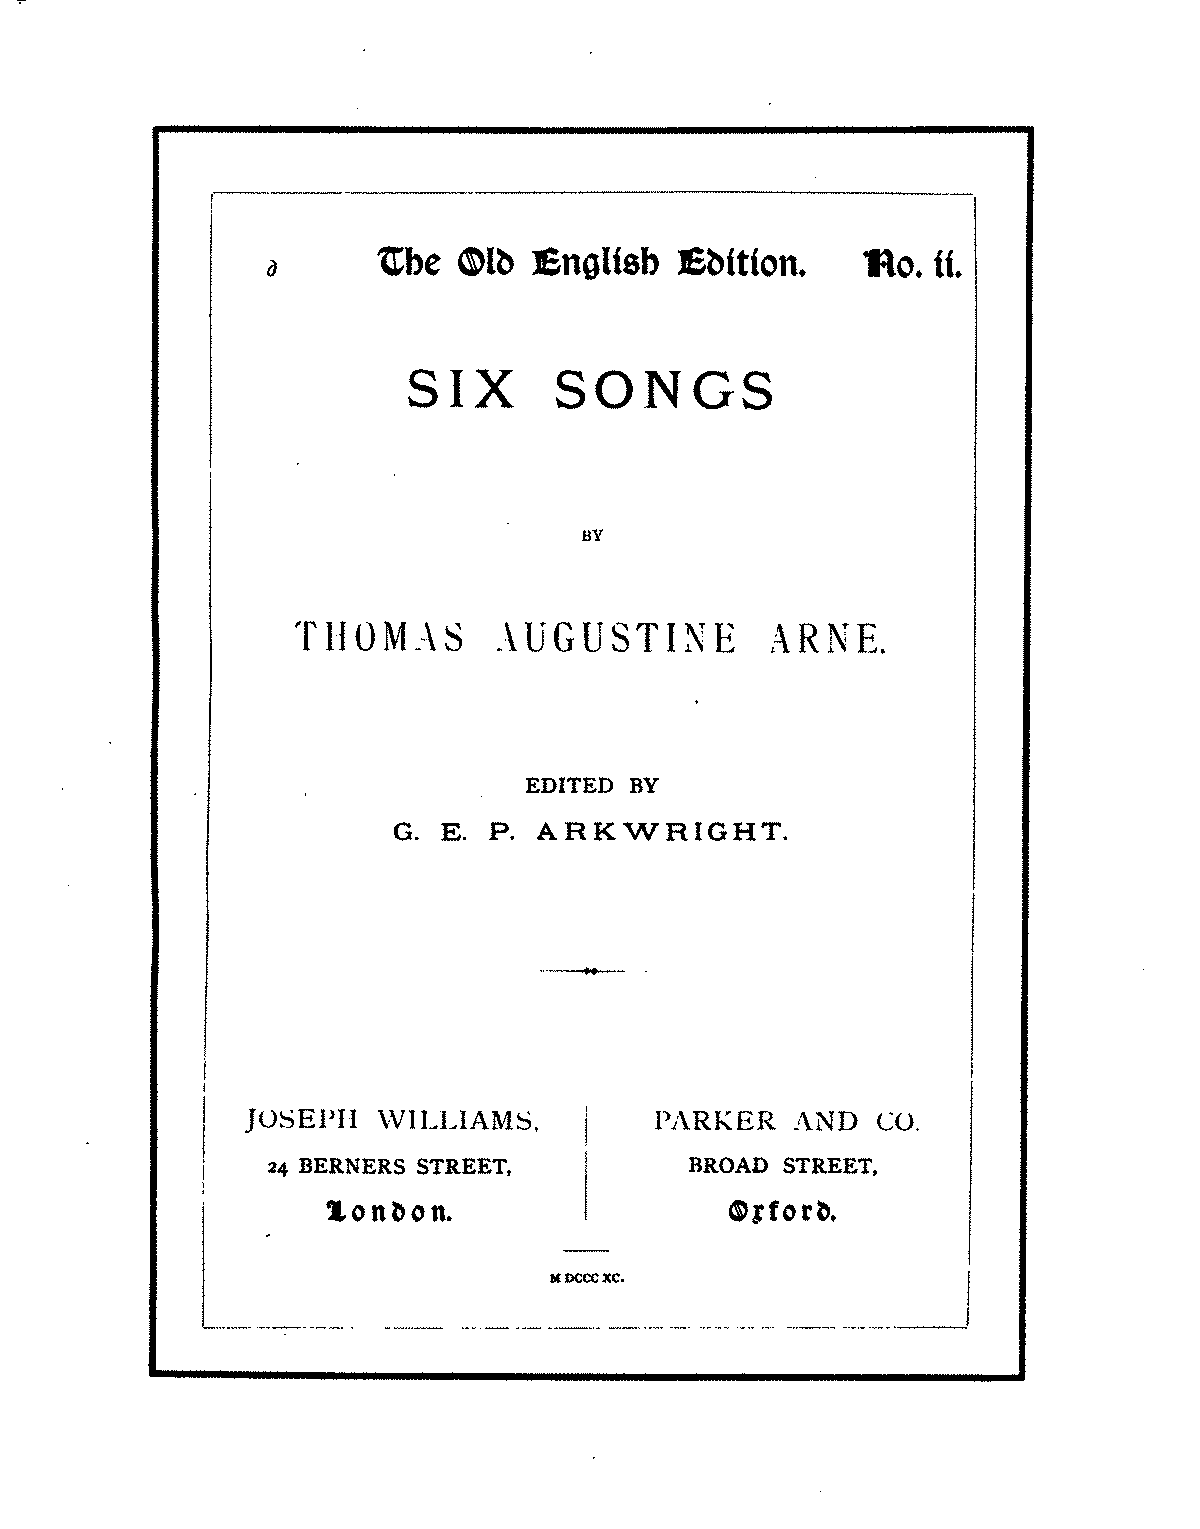 PMLP98161-Arne, Thomas Augustine, 6 Selected Songs.pdf